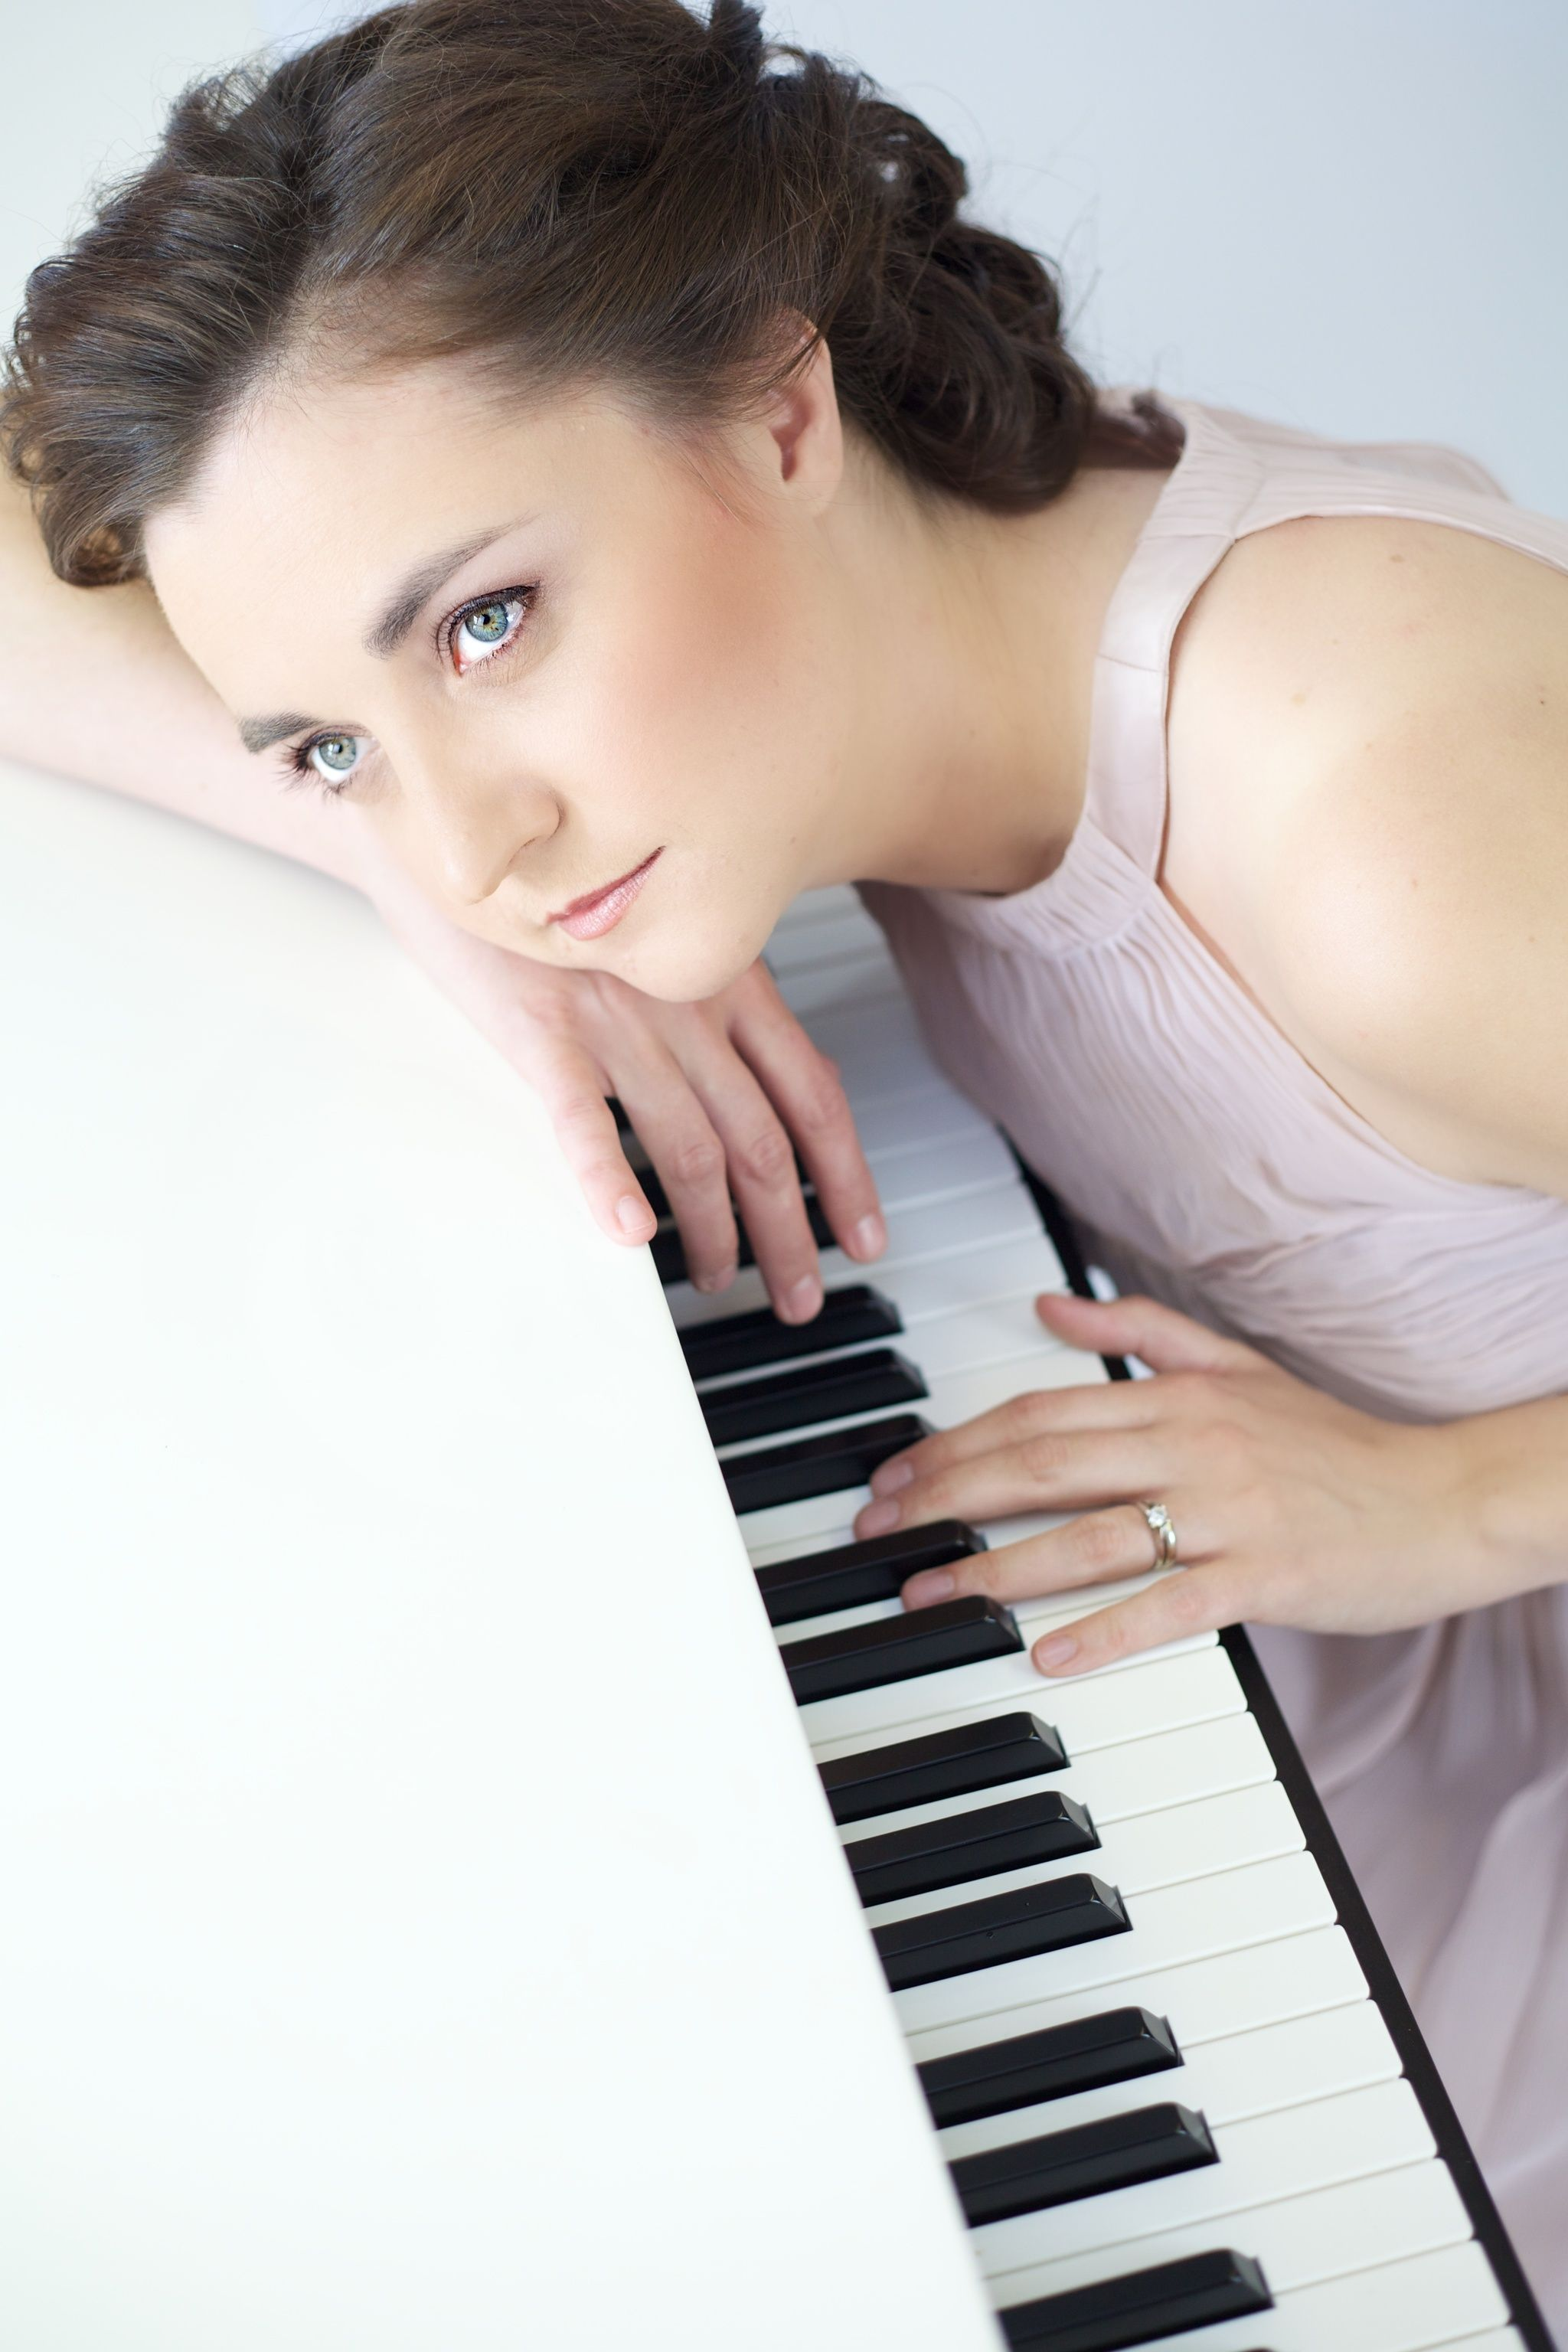 For the perfect wedding music, instrumental piano music